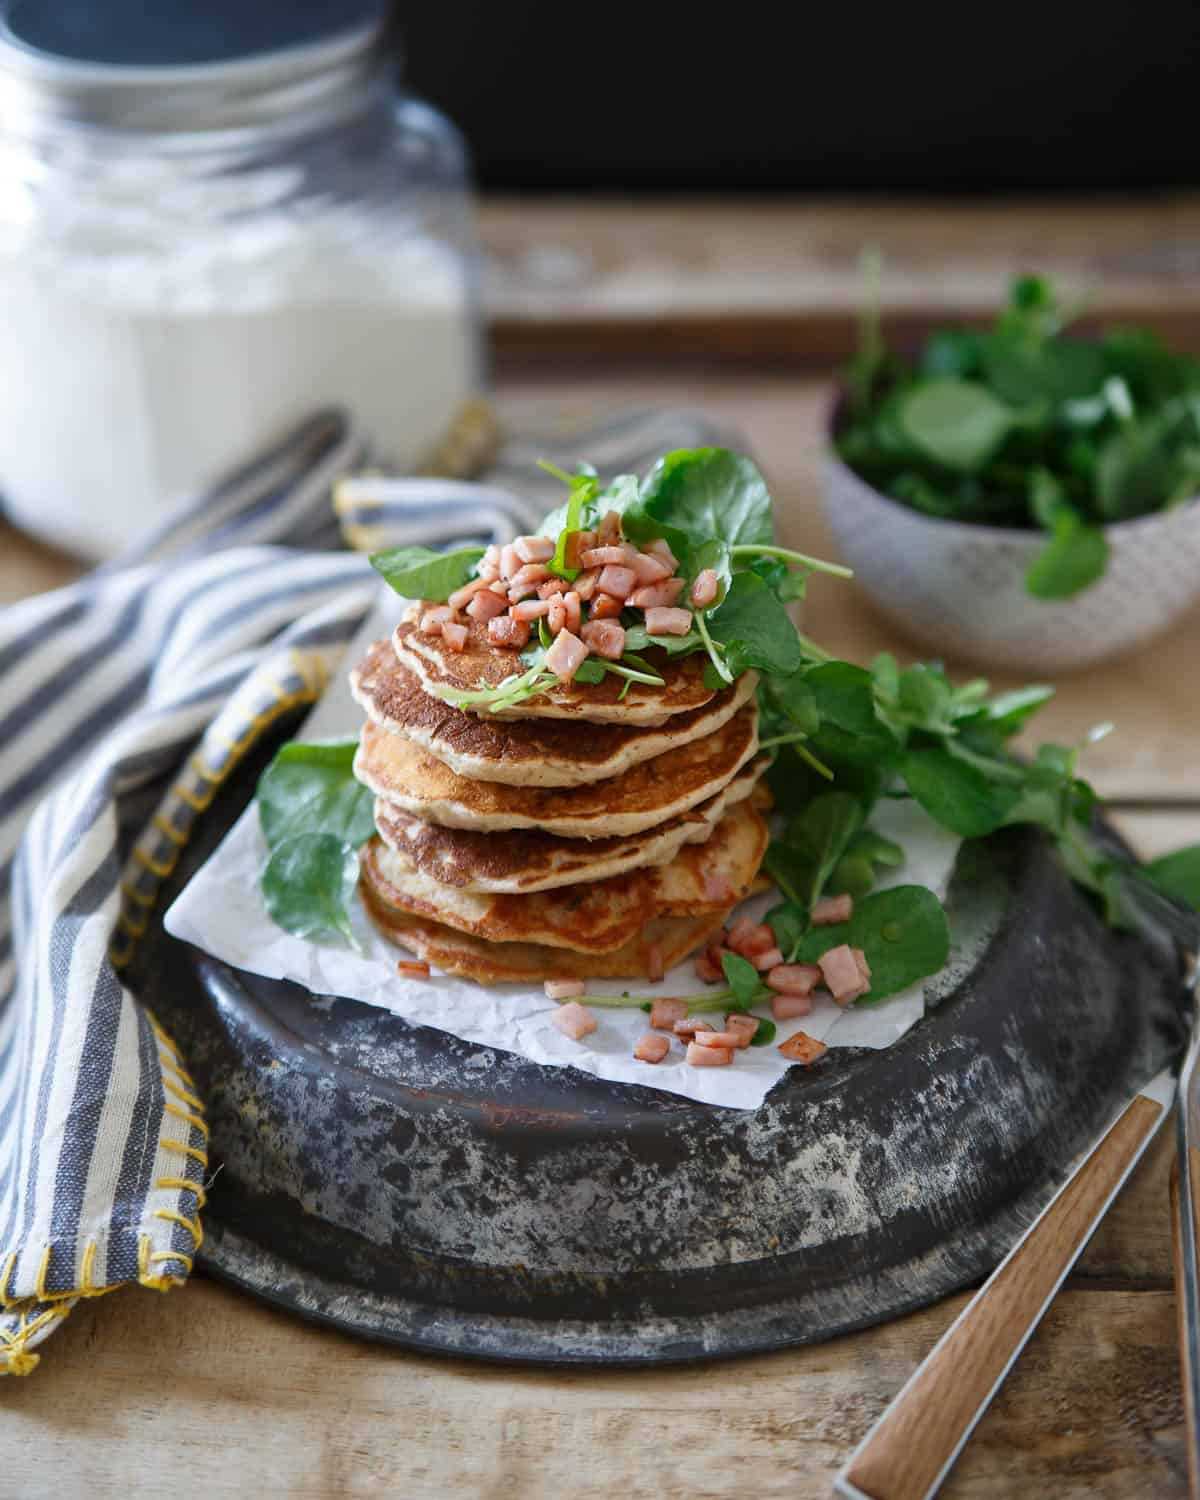 These Canadian bacon pancakes are stuffed full of savory shallots, herbs and Canadian bacon then topped with a crisp watercress salad. Perfect for brinner!